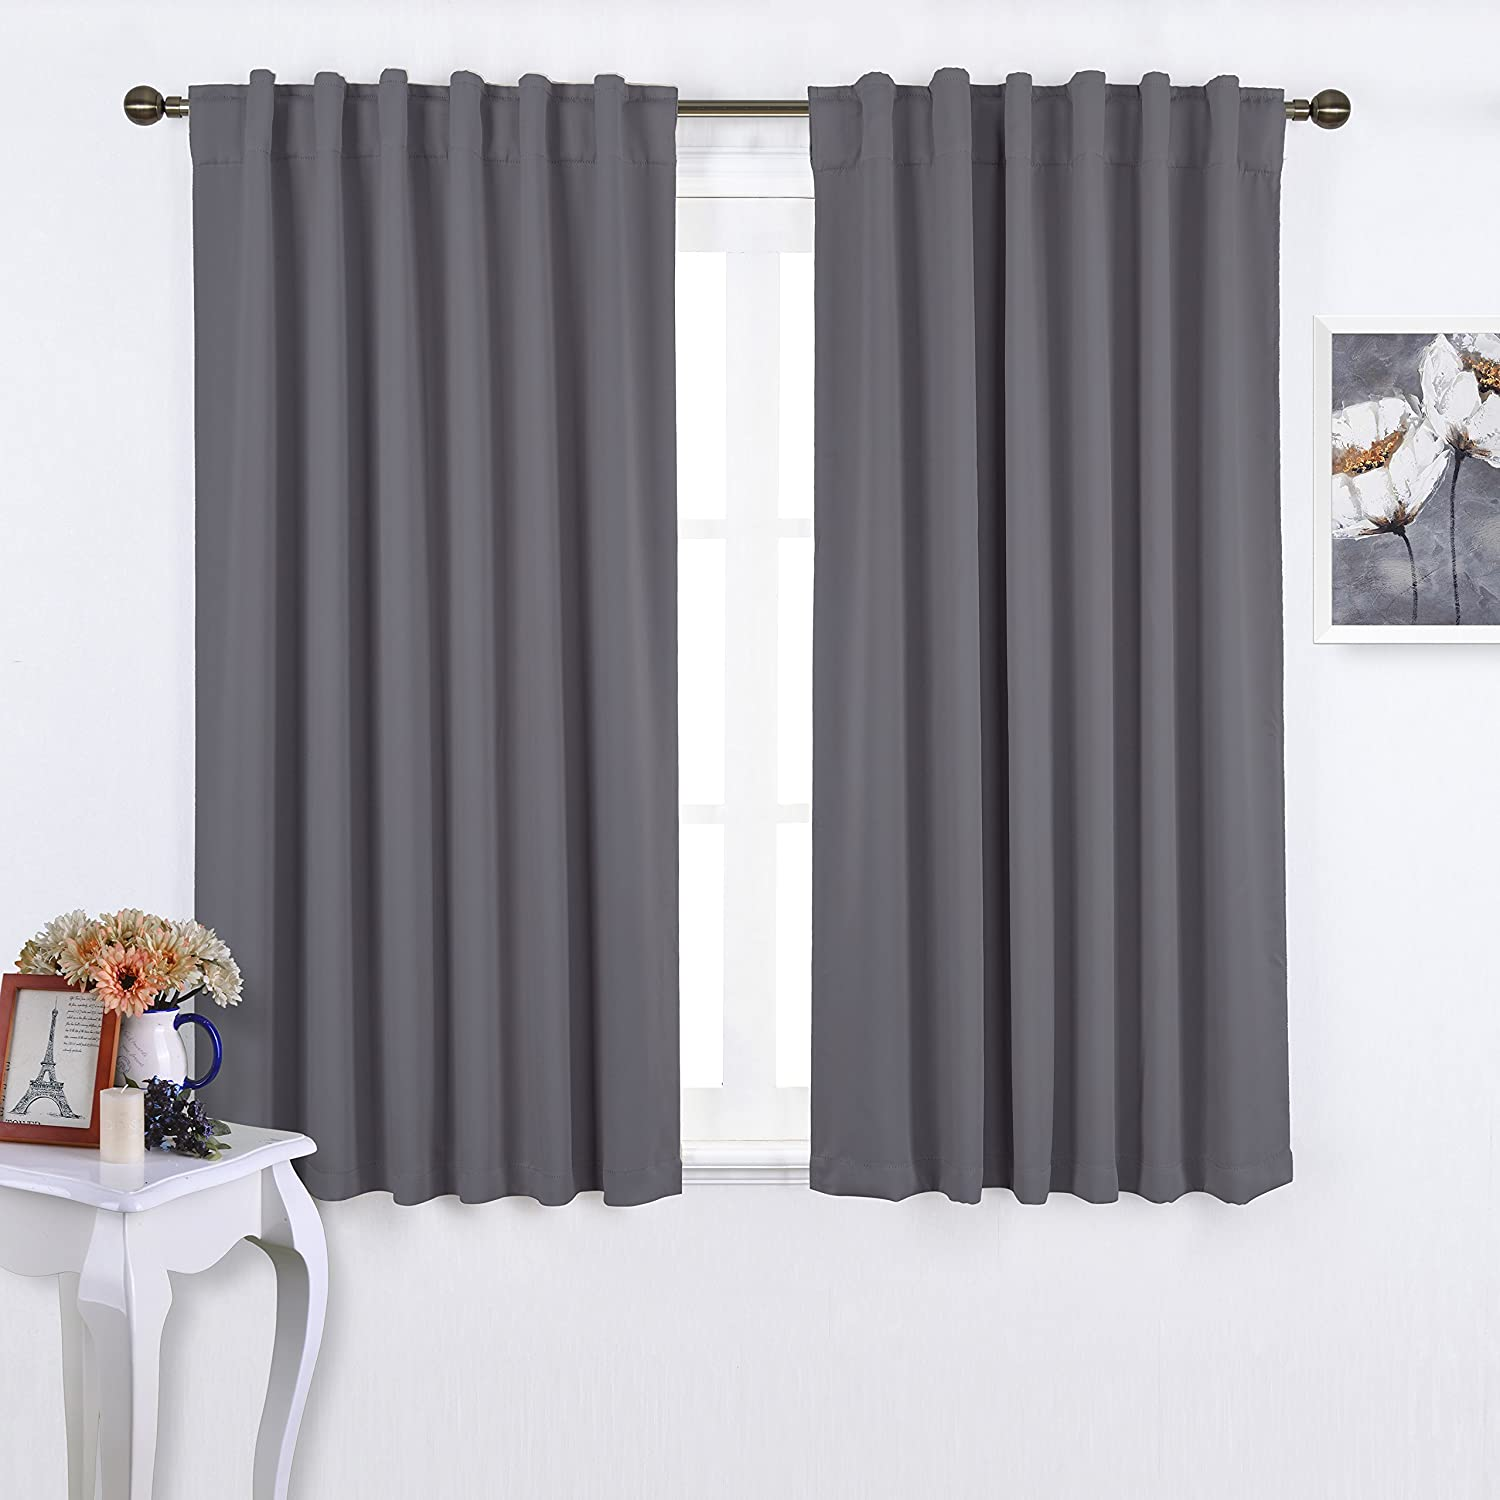 cute fabric blackout charming ideas amazon home blocking yard targe for decoration light pink the thermal by decorating heat curtain linen breathtaking curtains